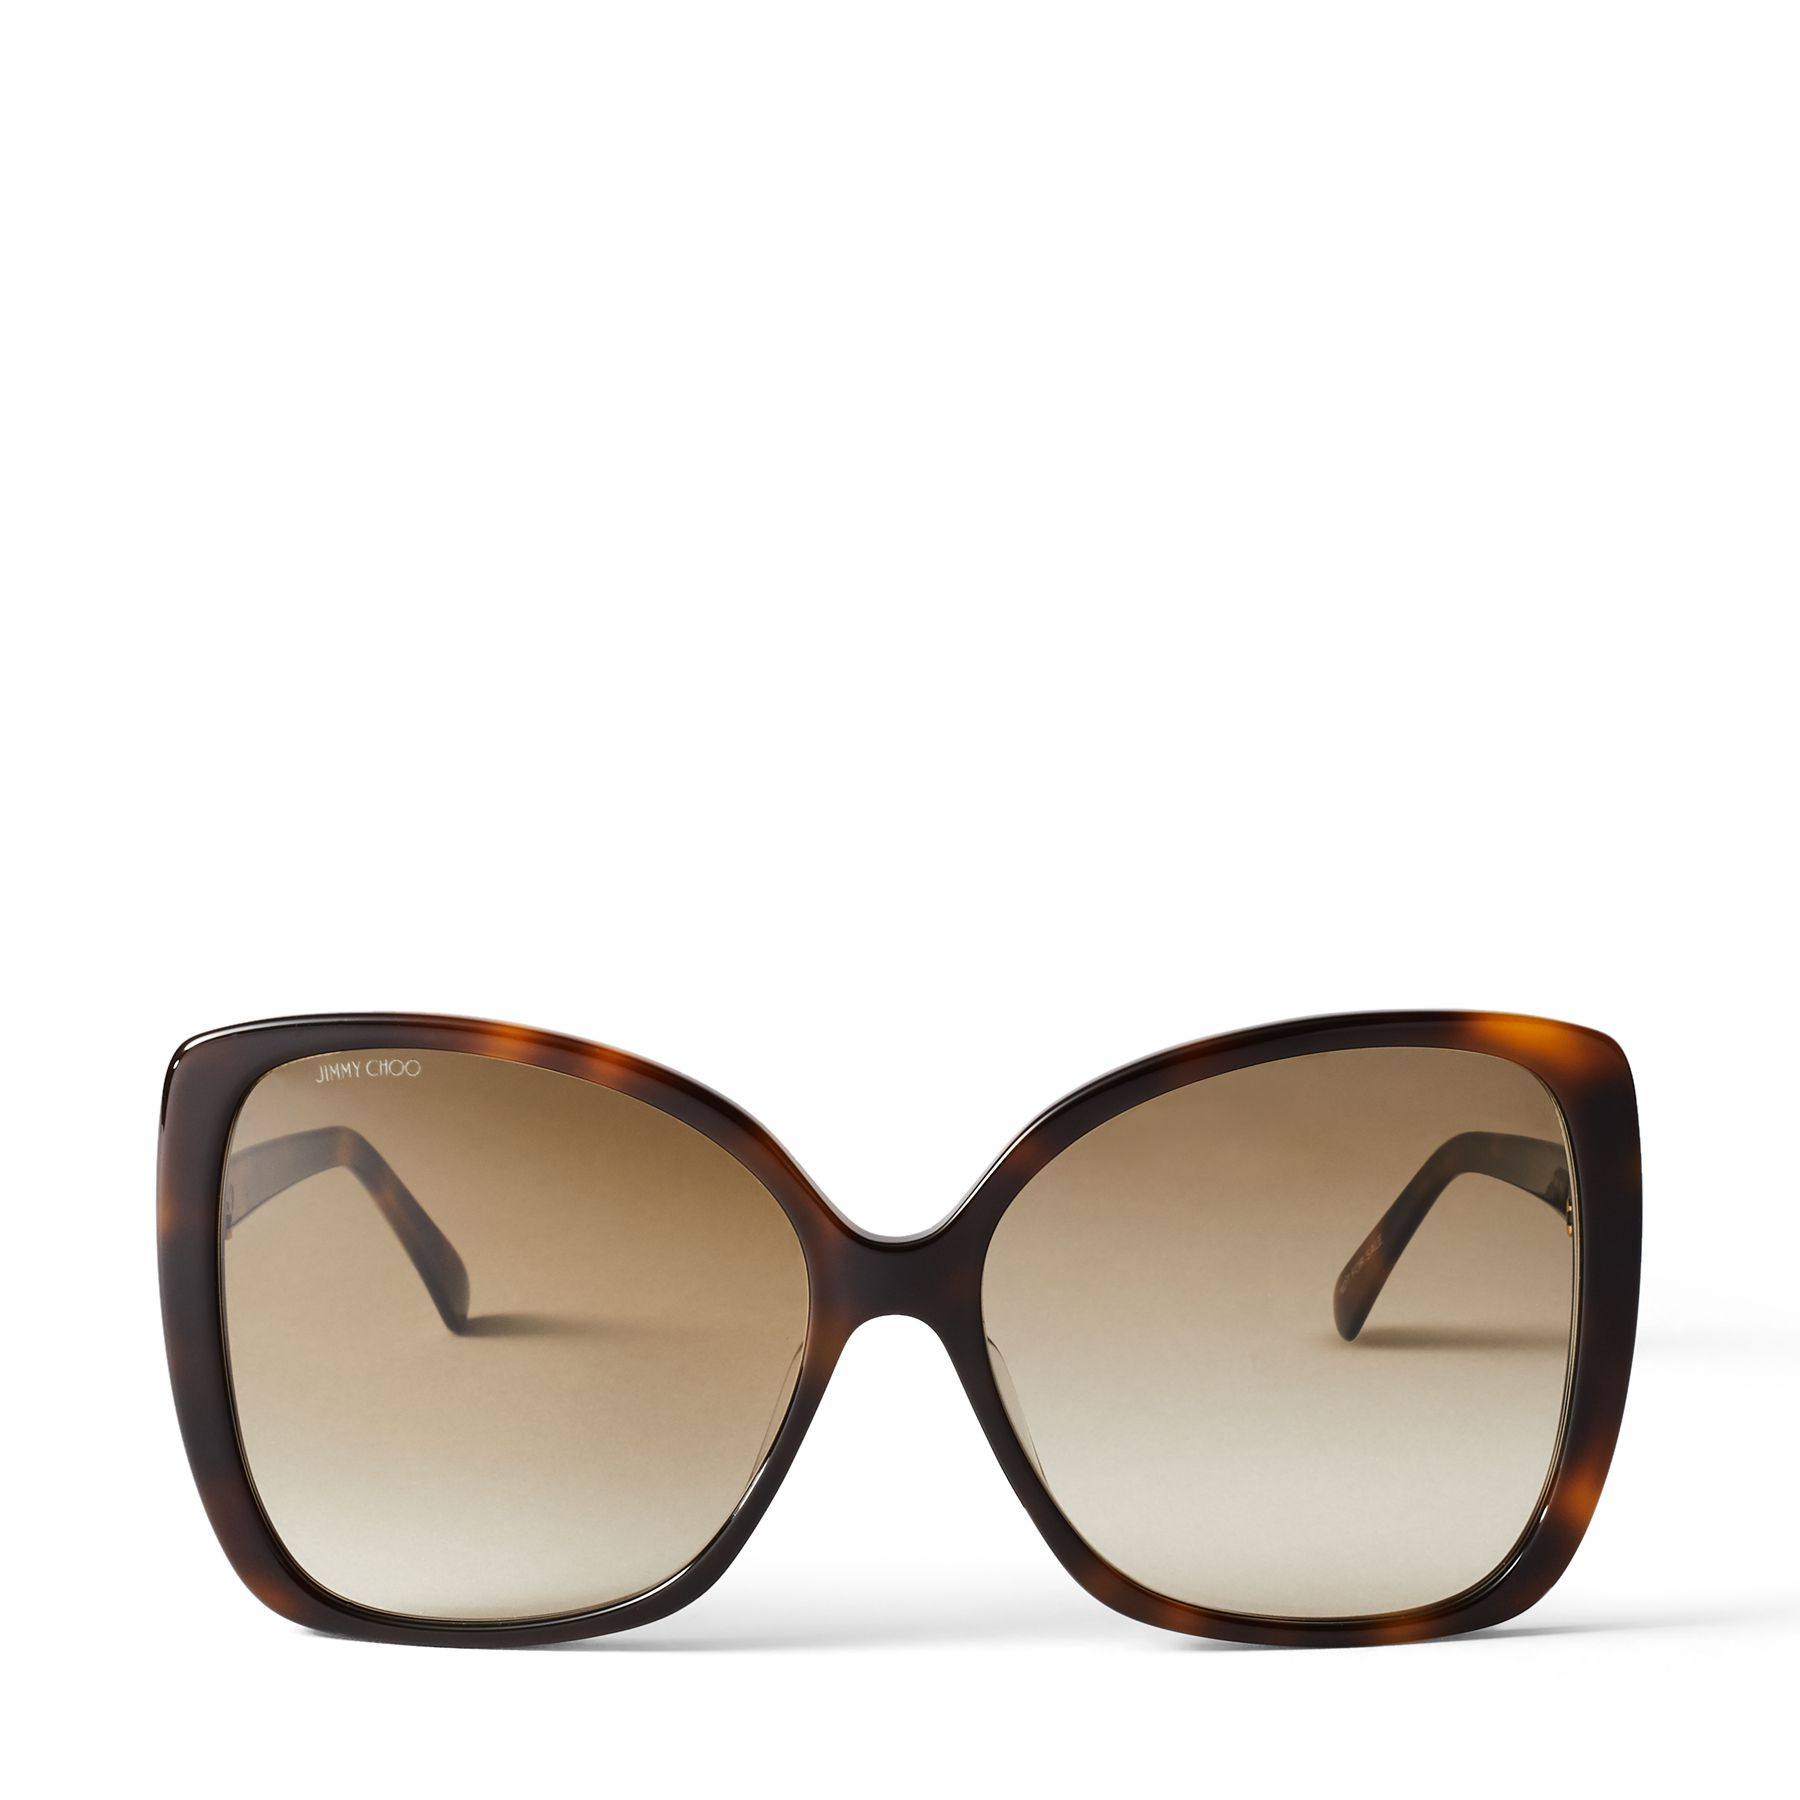 Featuring our gold Jimmy Choo logo, our BECKY sunglasses are designed with a dark brown havana front and brown shaded lenses. Made in Italy, this oversized pair is crafted from glossy acetate and finished with a gold insert embellished with baguette crystals by Swarovski on the temple. Wear yours everywhere.